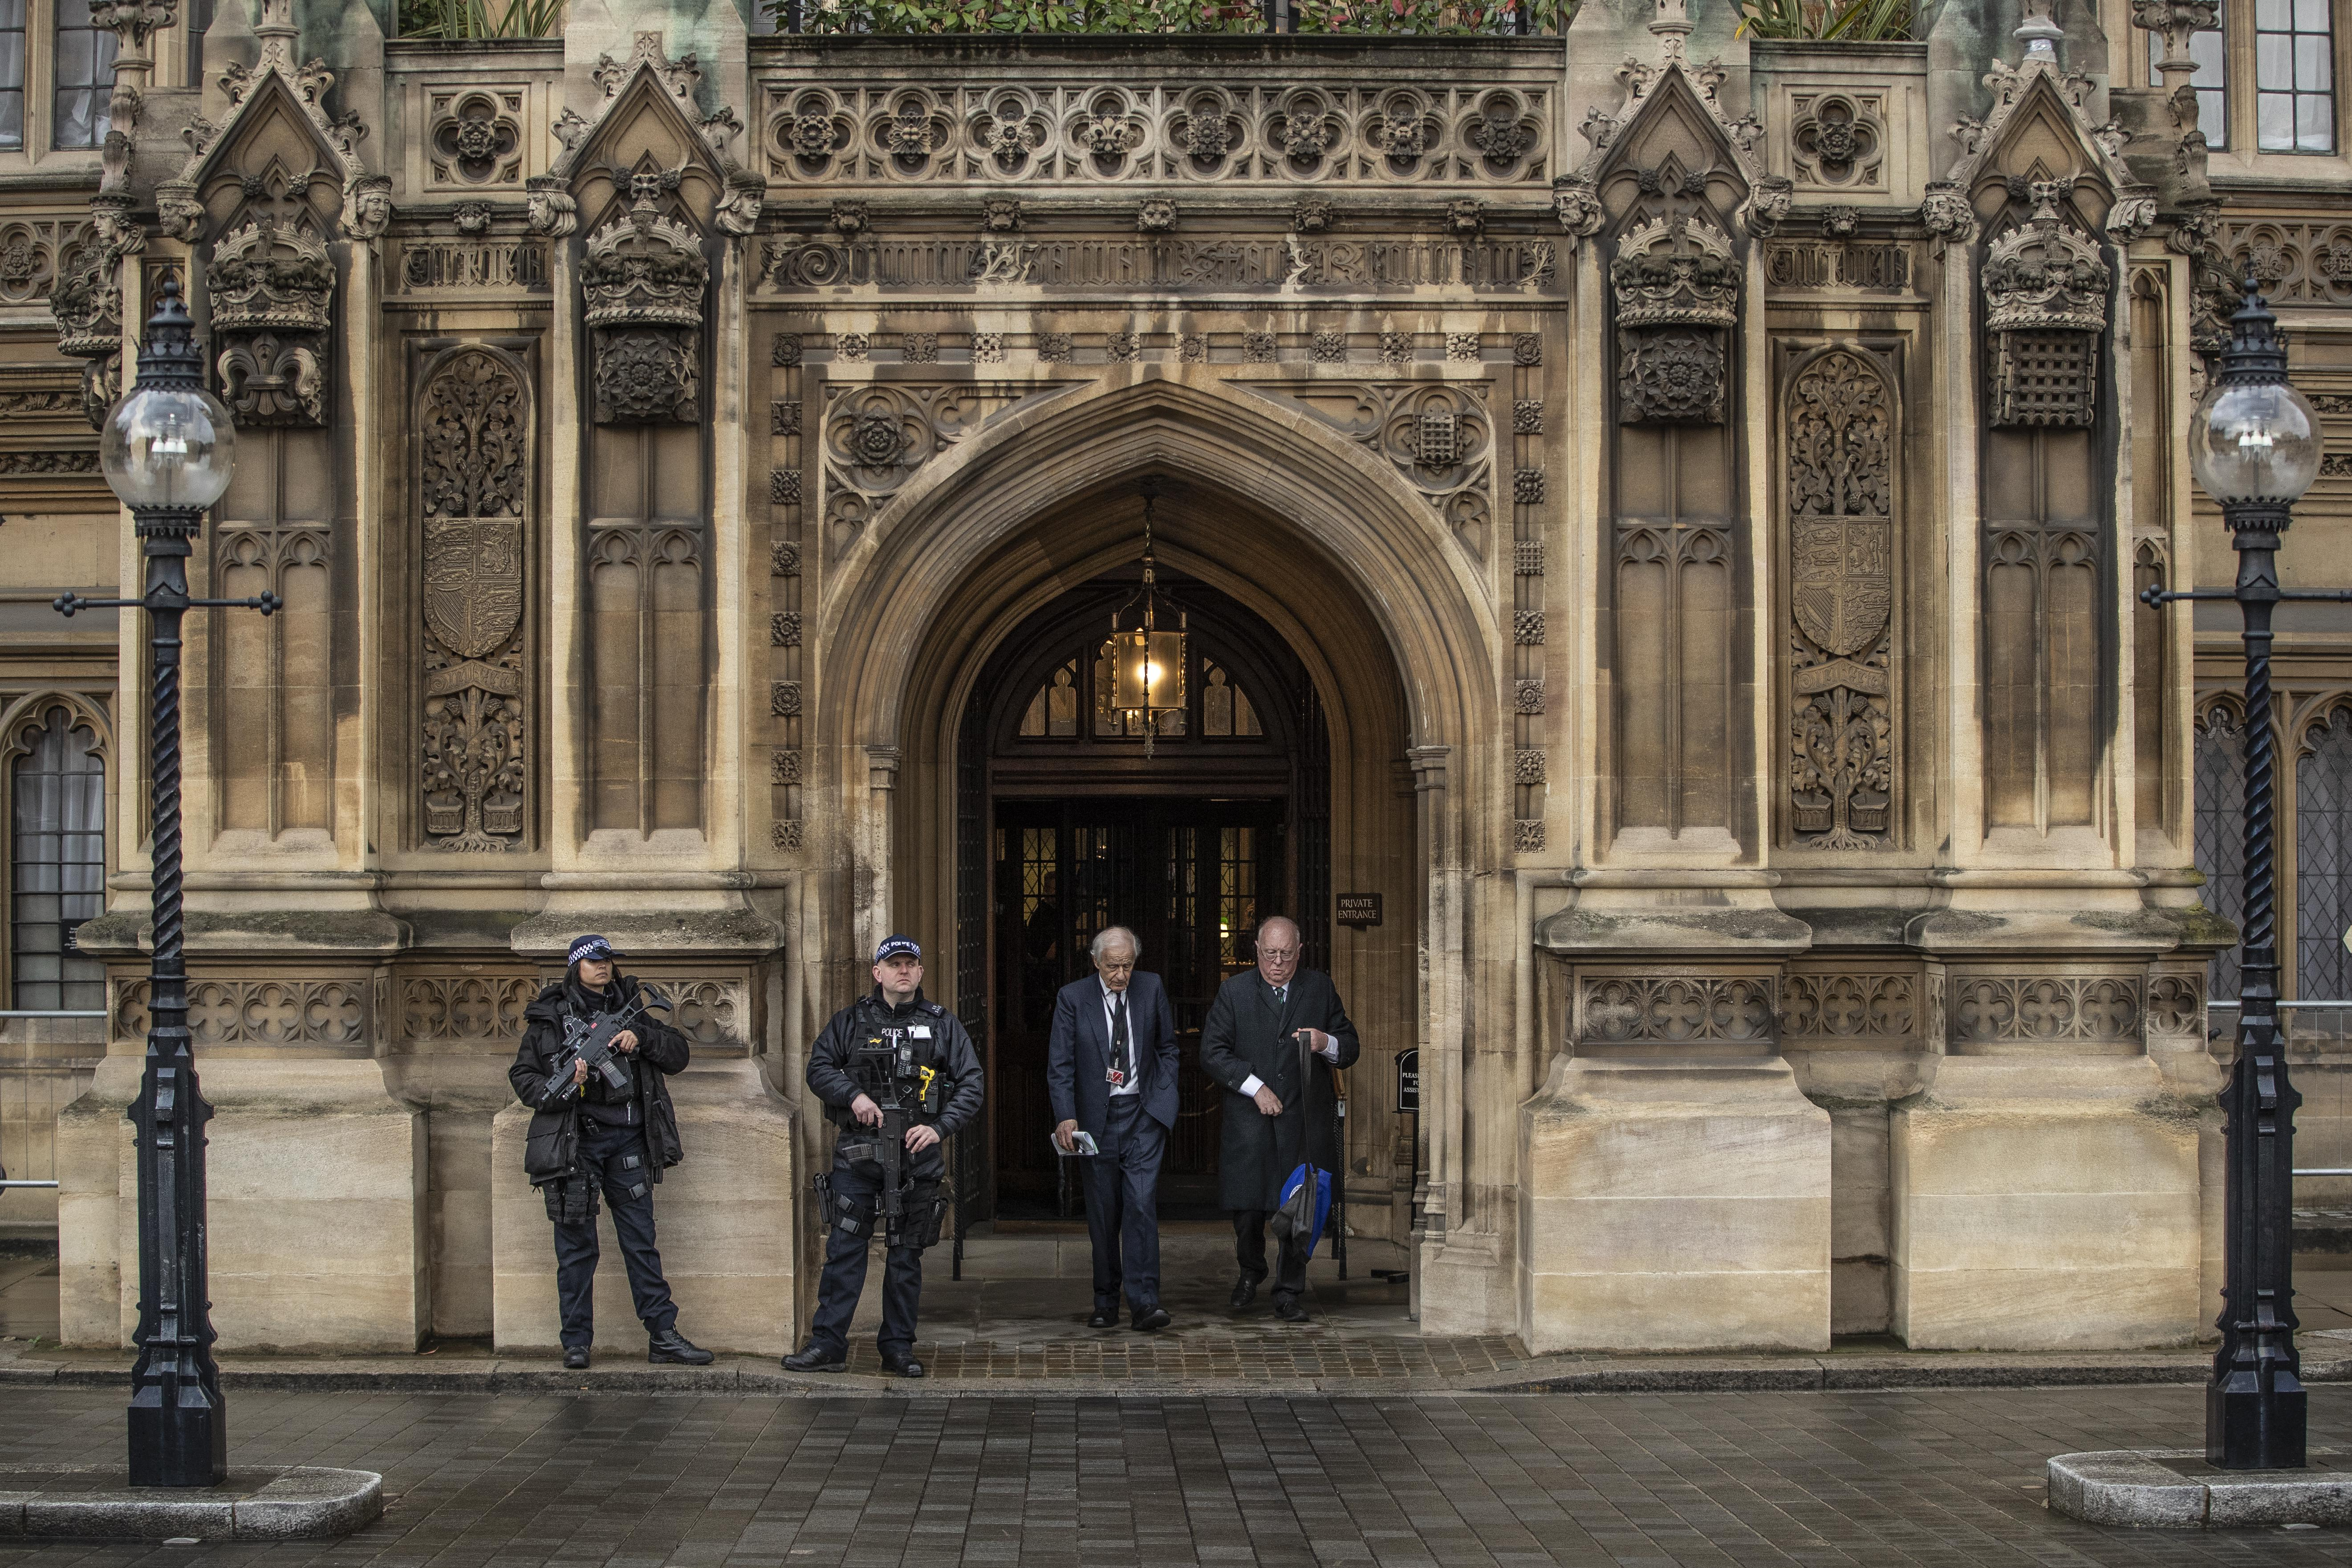 """The """"Peers Entrance"""" to the Houses of Parliament in London."""